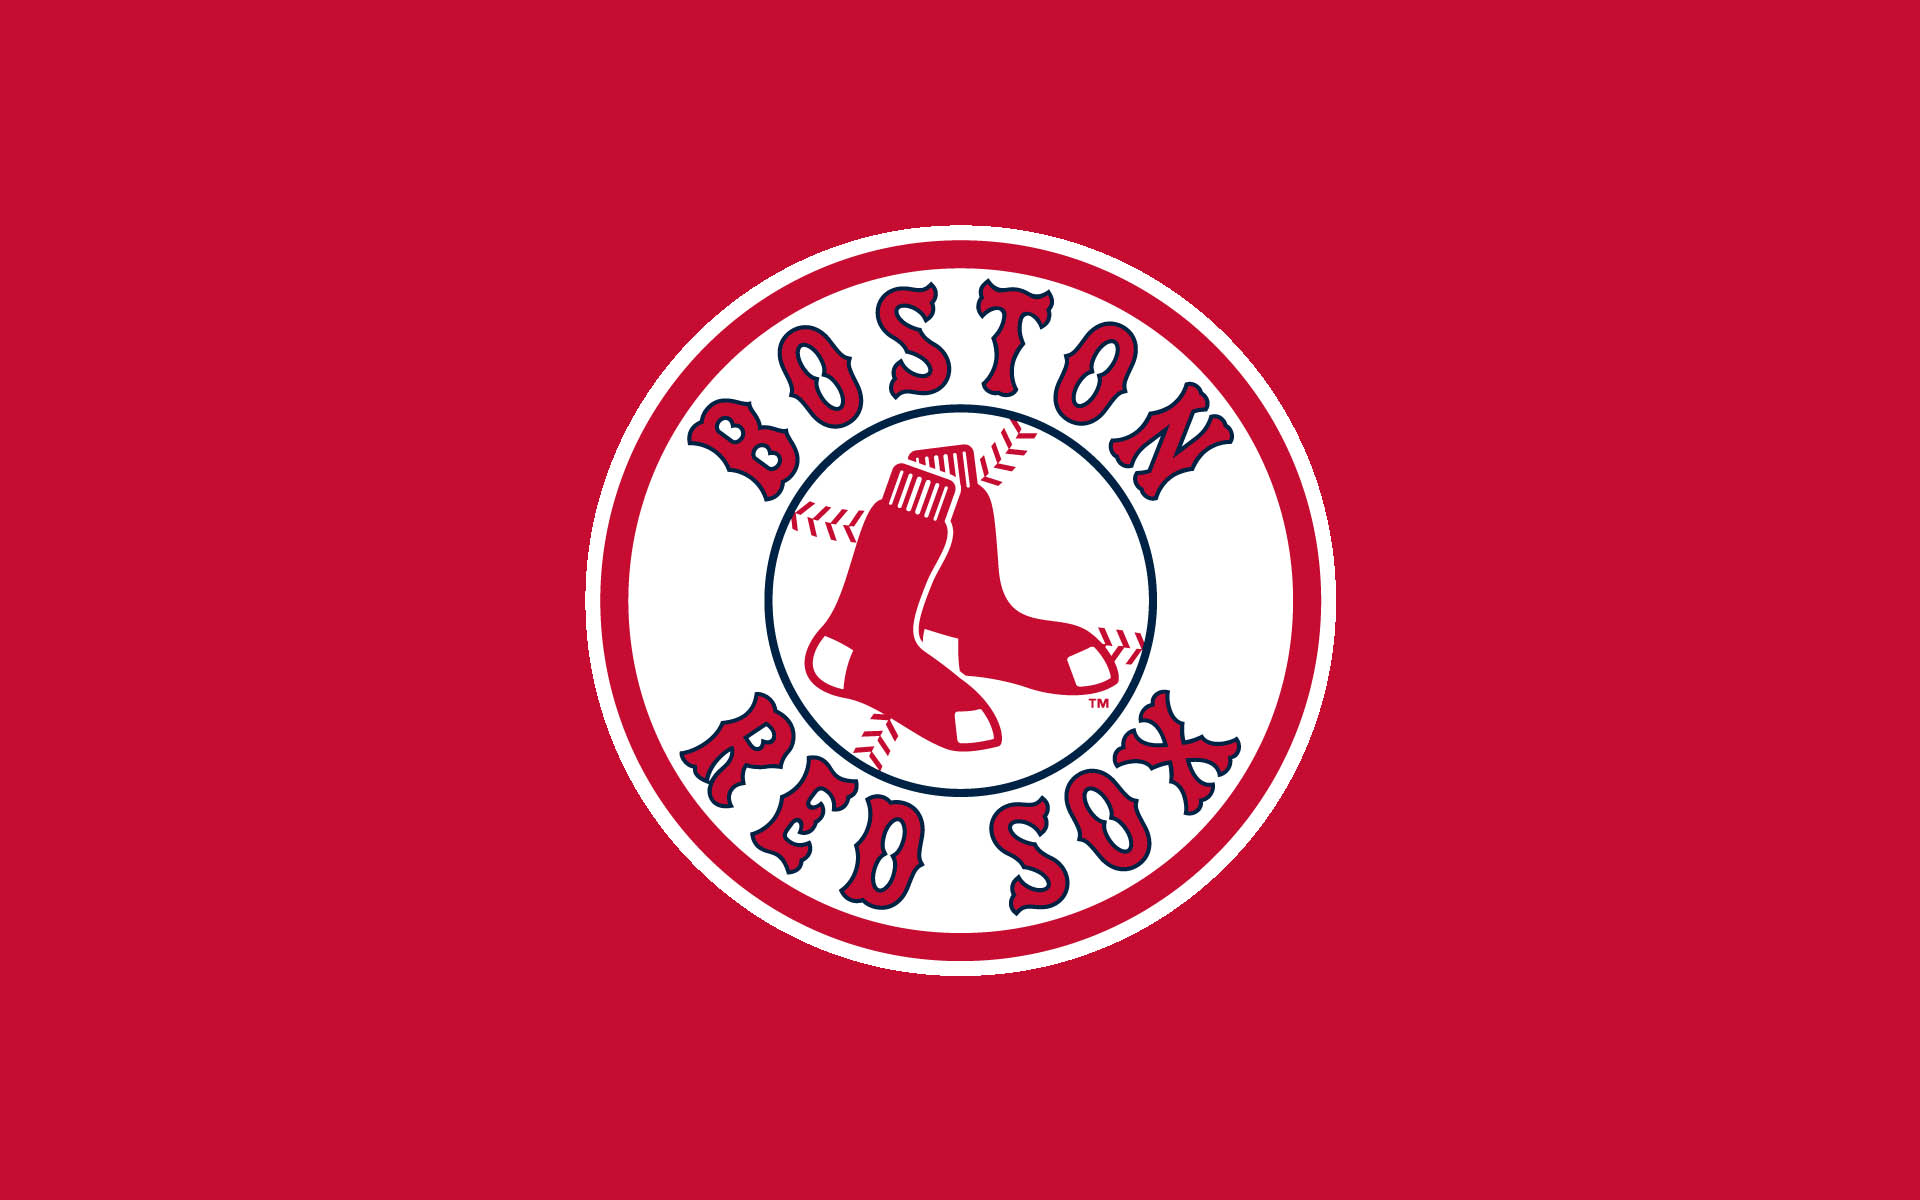 Fondos de pantalla de Boston Red Sox Wallpapers de Boston Red Sox 1920x1200